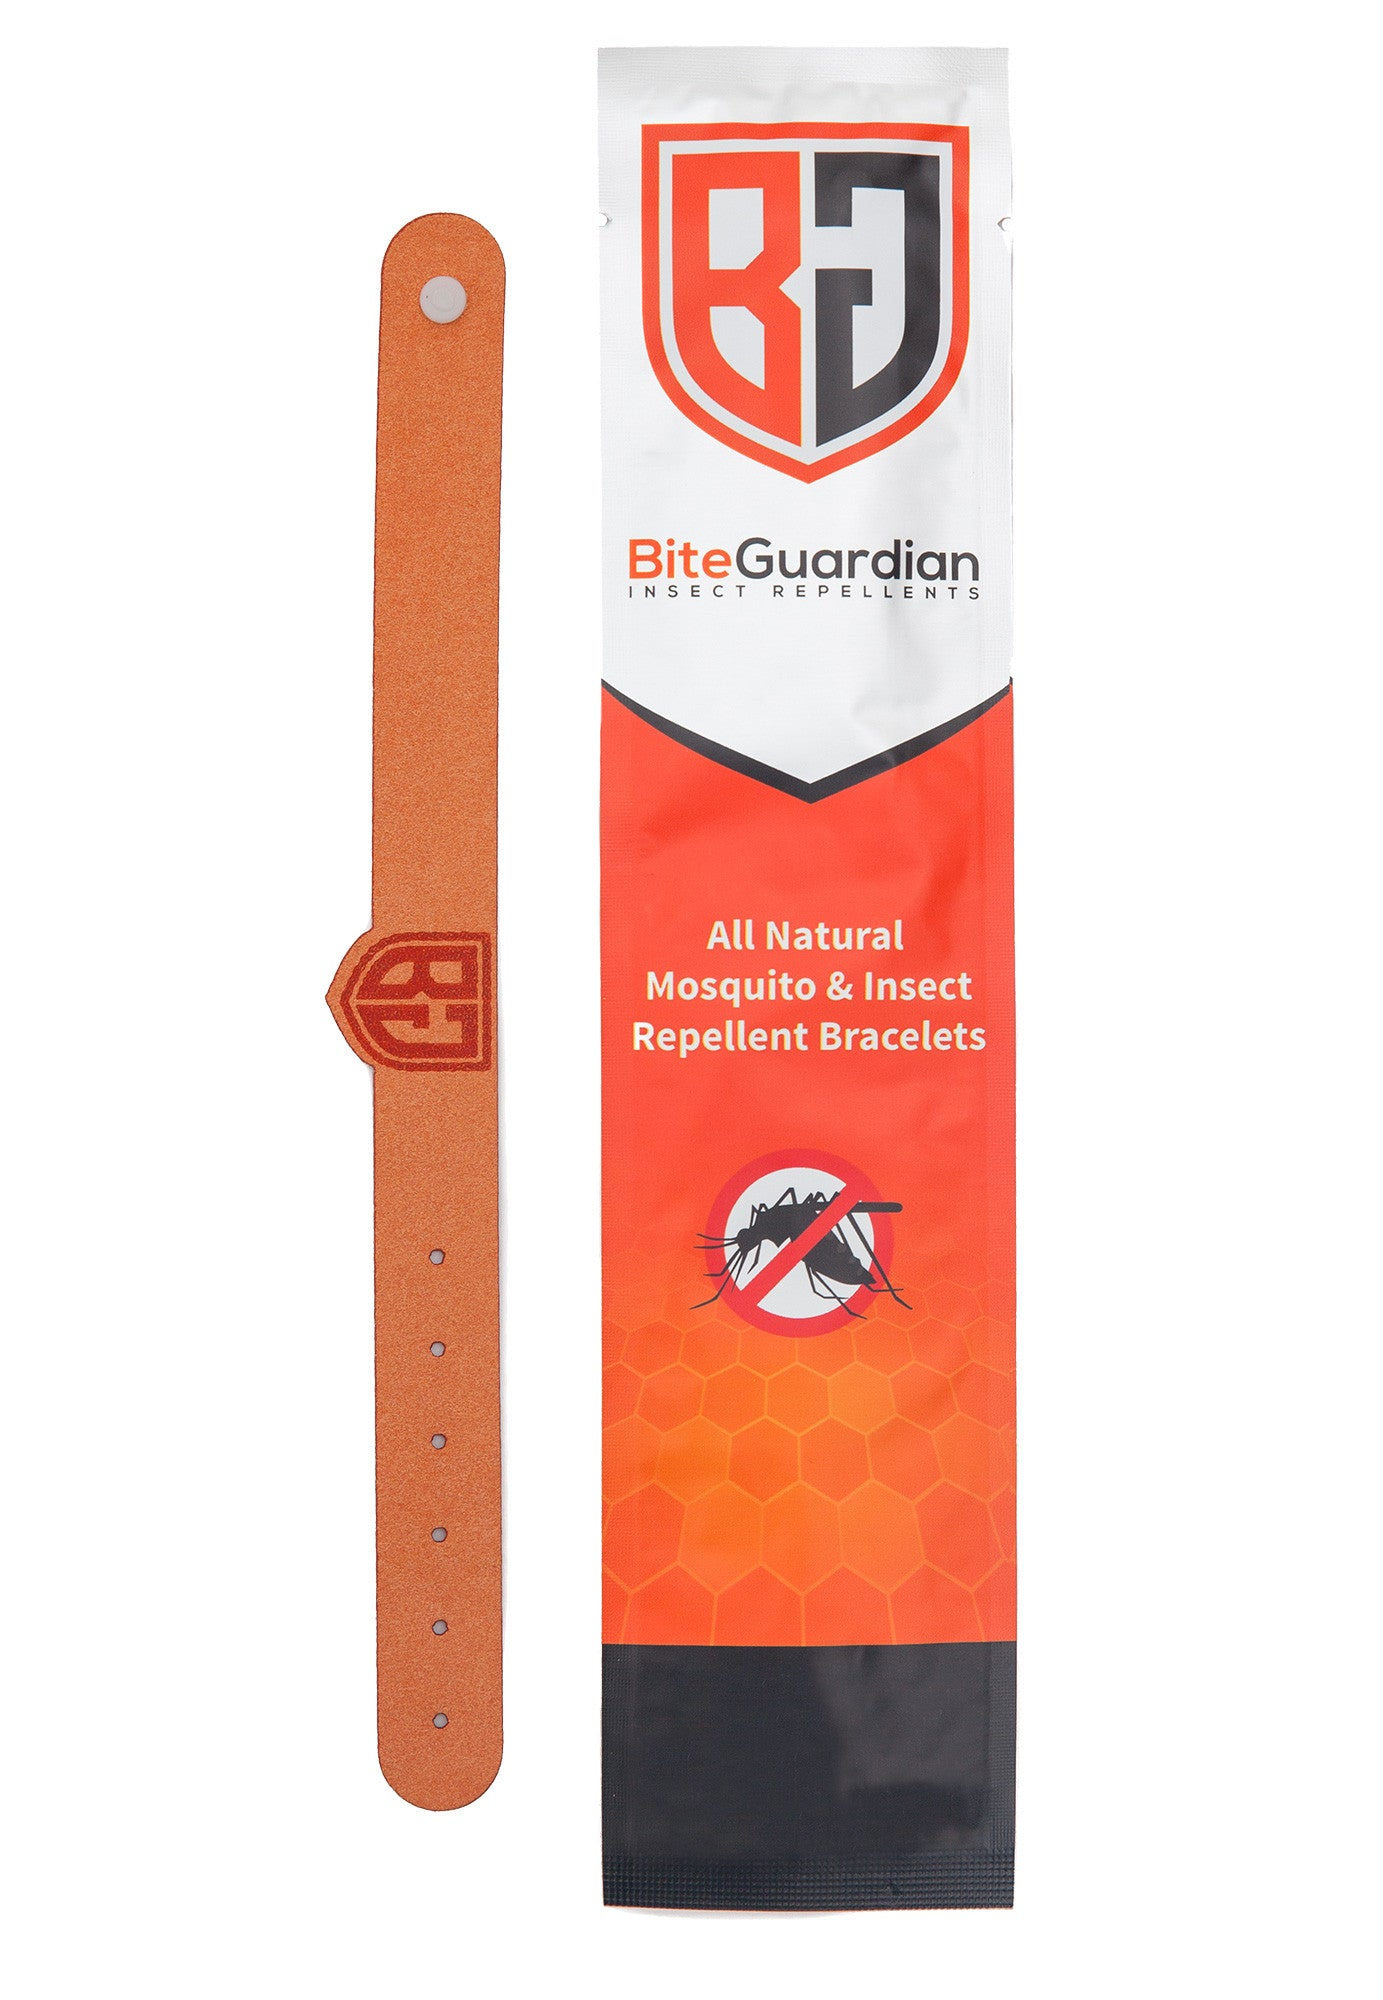 BiteGuardian Mosquito Tick & Insect Repellent Bracelets 10-Pack